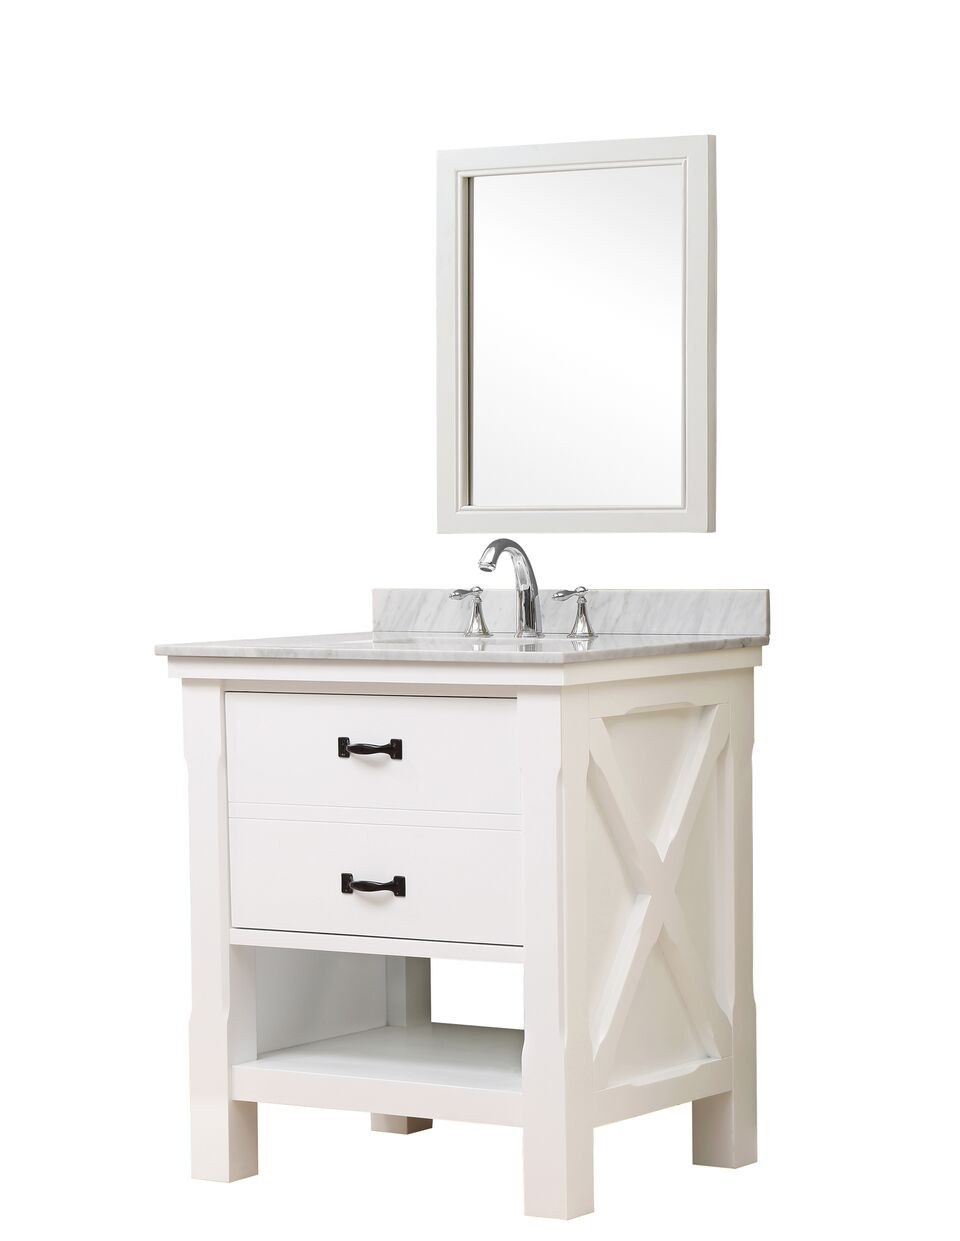 Direct Vanity Sink 32s1 Wwc M Xtraordinary Spa 32 Inch White With Carrara